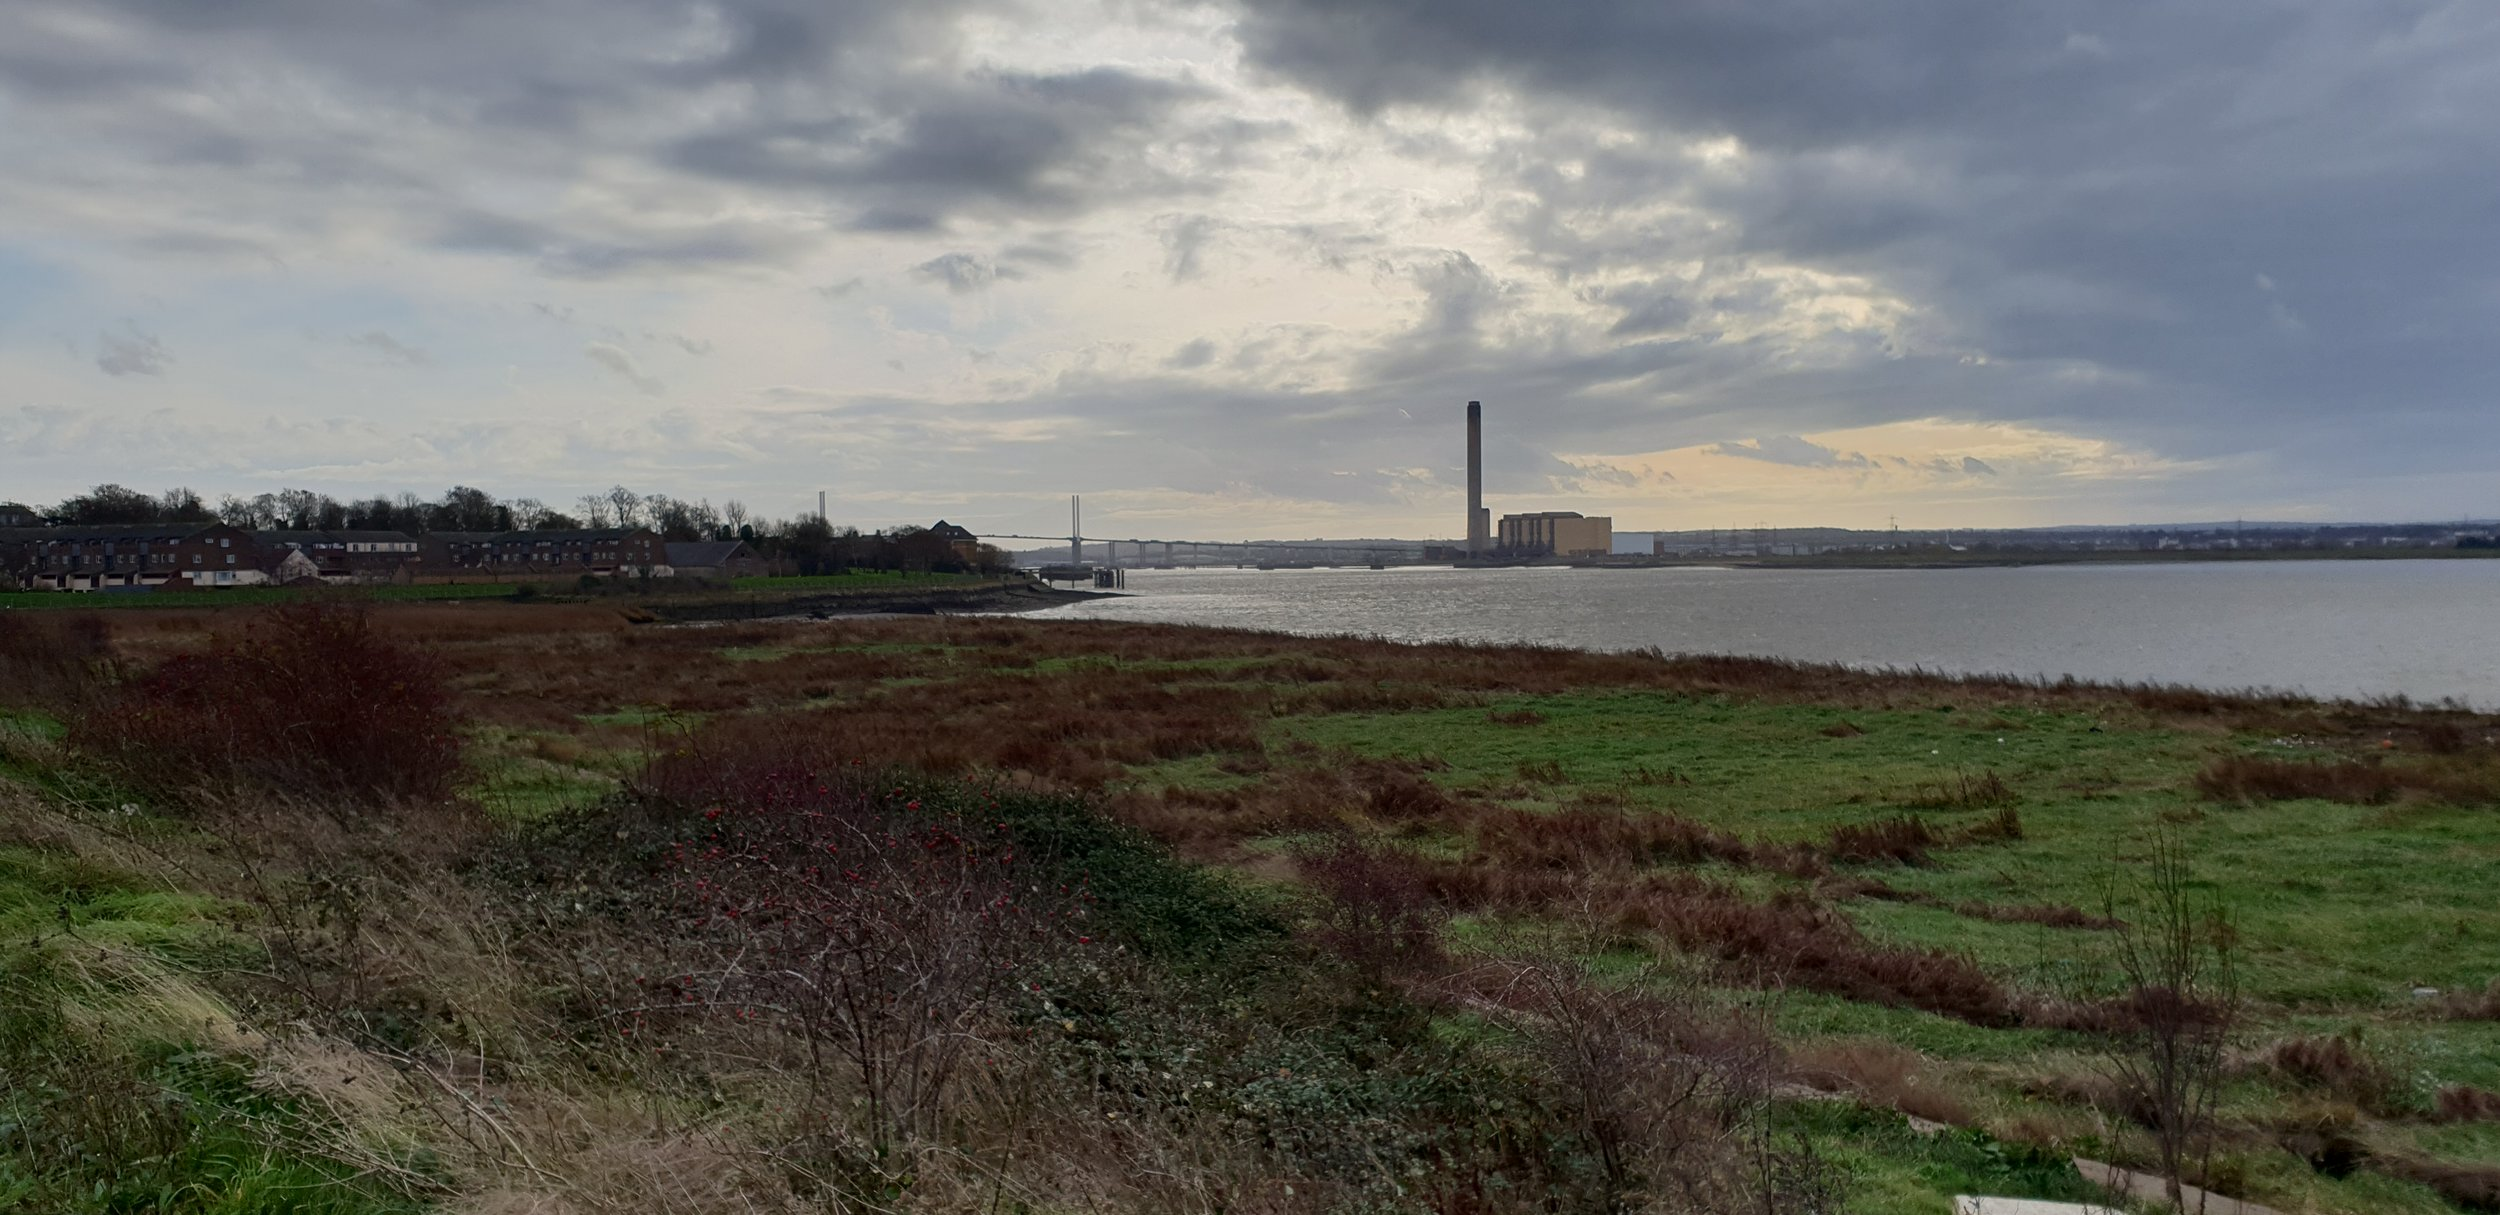 Looking back towards Dartford Crossing